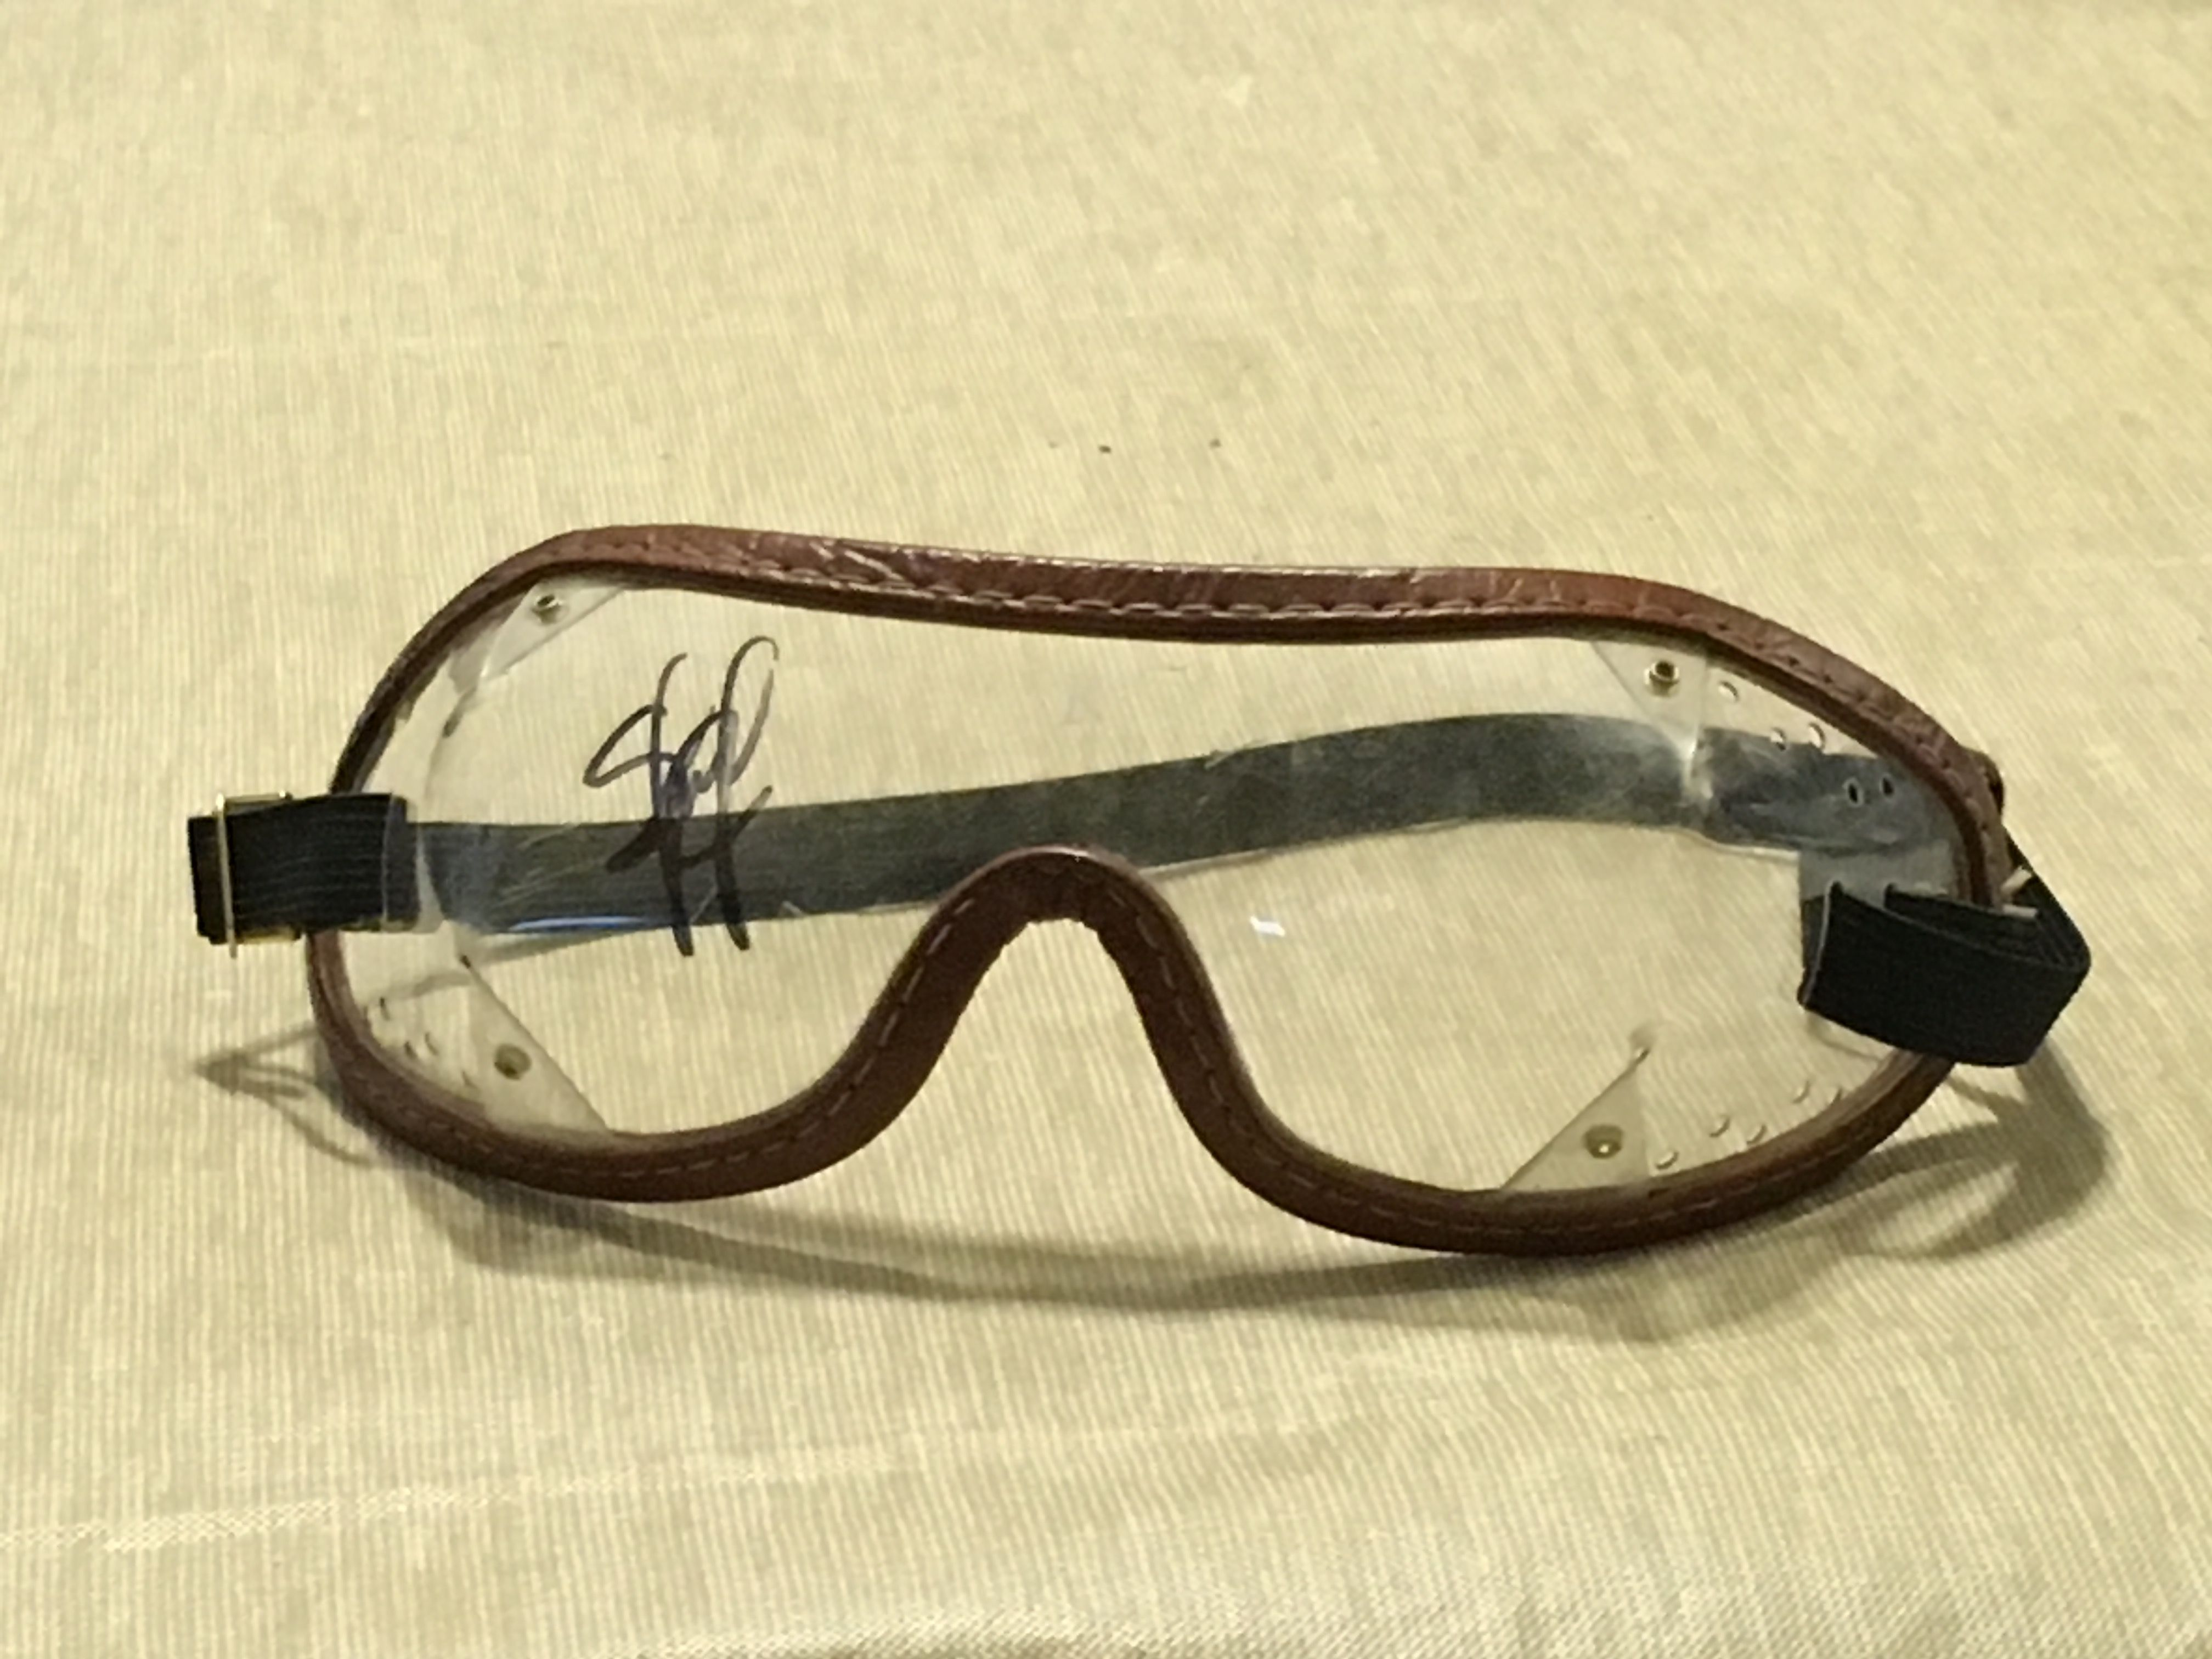 Autographed jockey goggles given to my young son, by notable jockey Samuel Camacho, Jr., during my family's 2016 trip to the Saratoga Race Course (Saratoga Springs, NY)